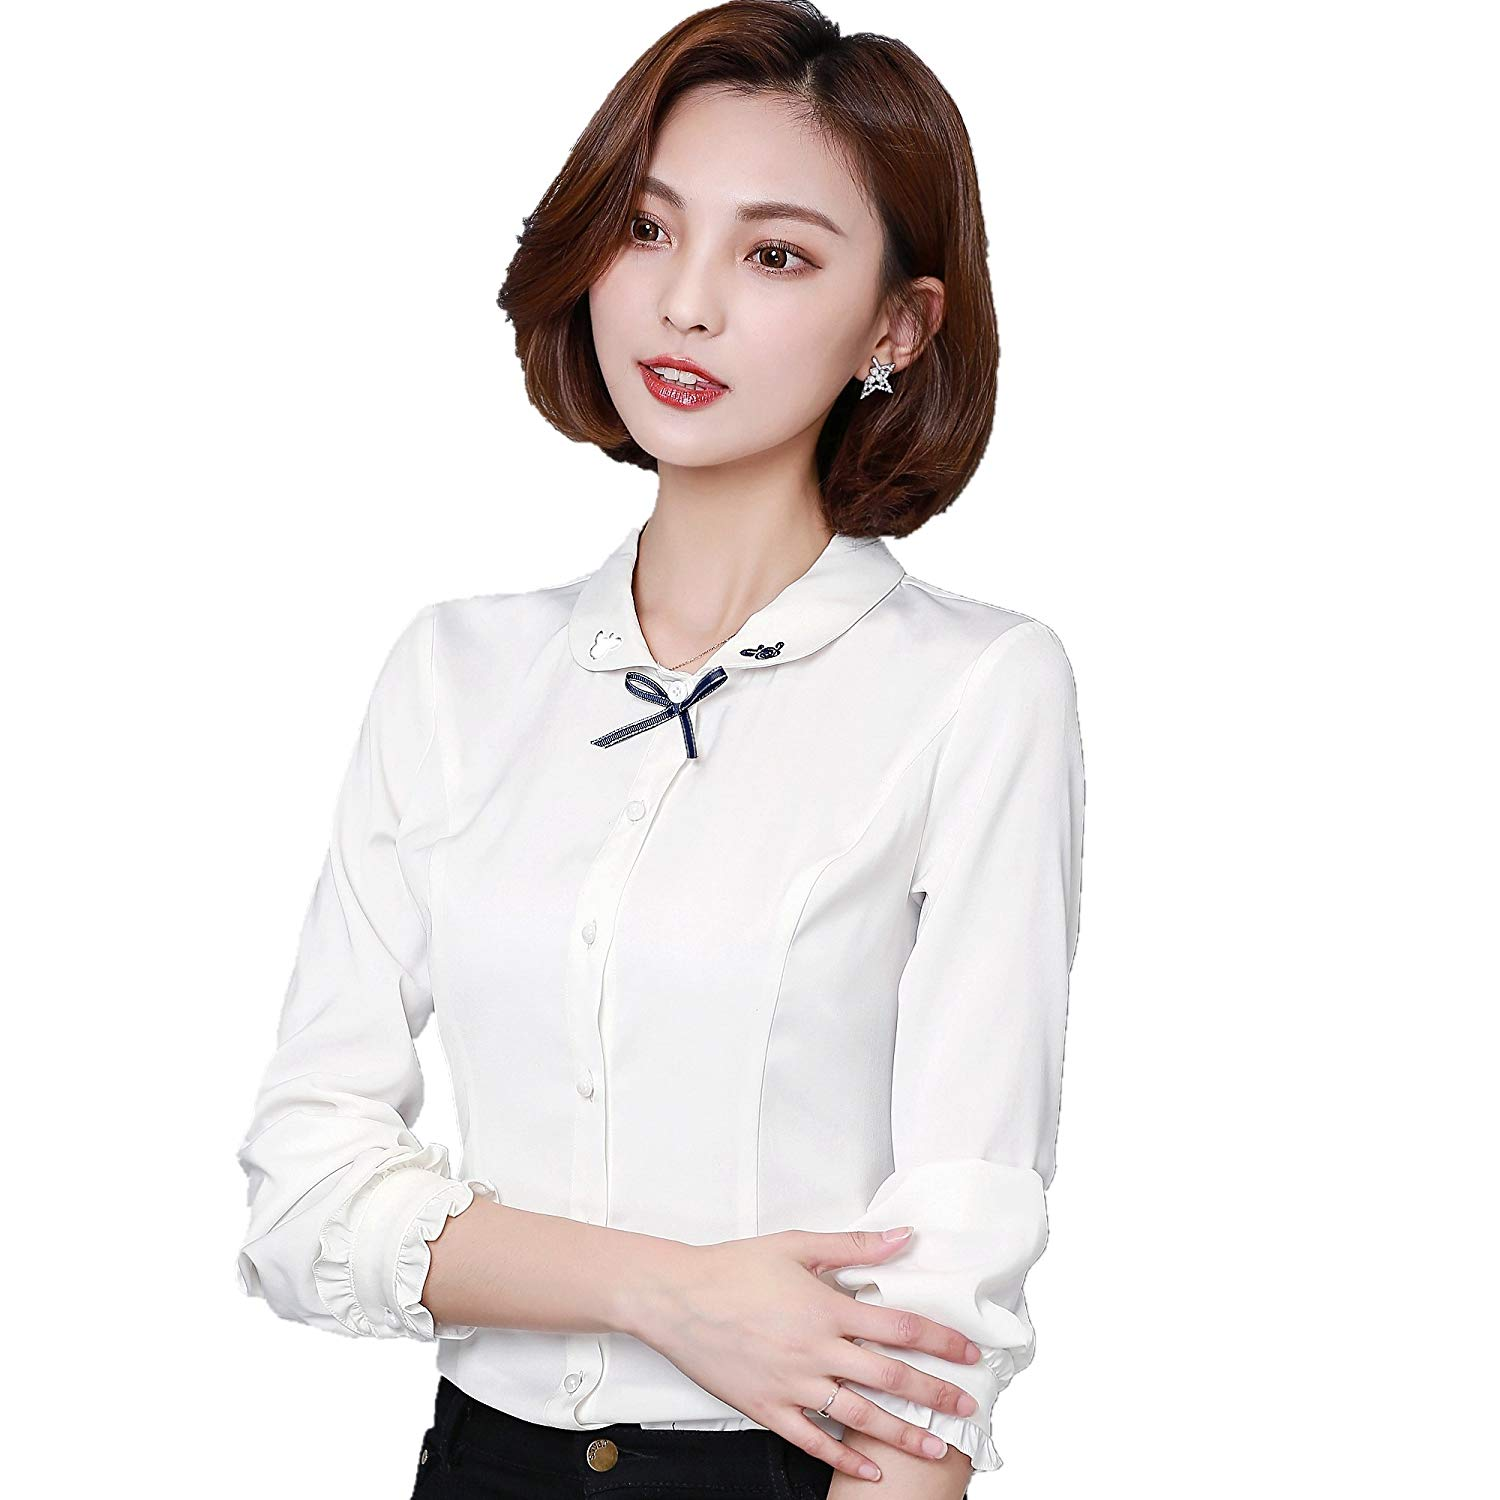 ba6cd6fb396 Cheap Frilly Blouse, find Frilly Blouse deals on line at Alibaba.com